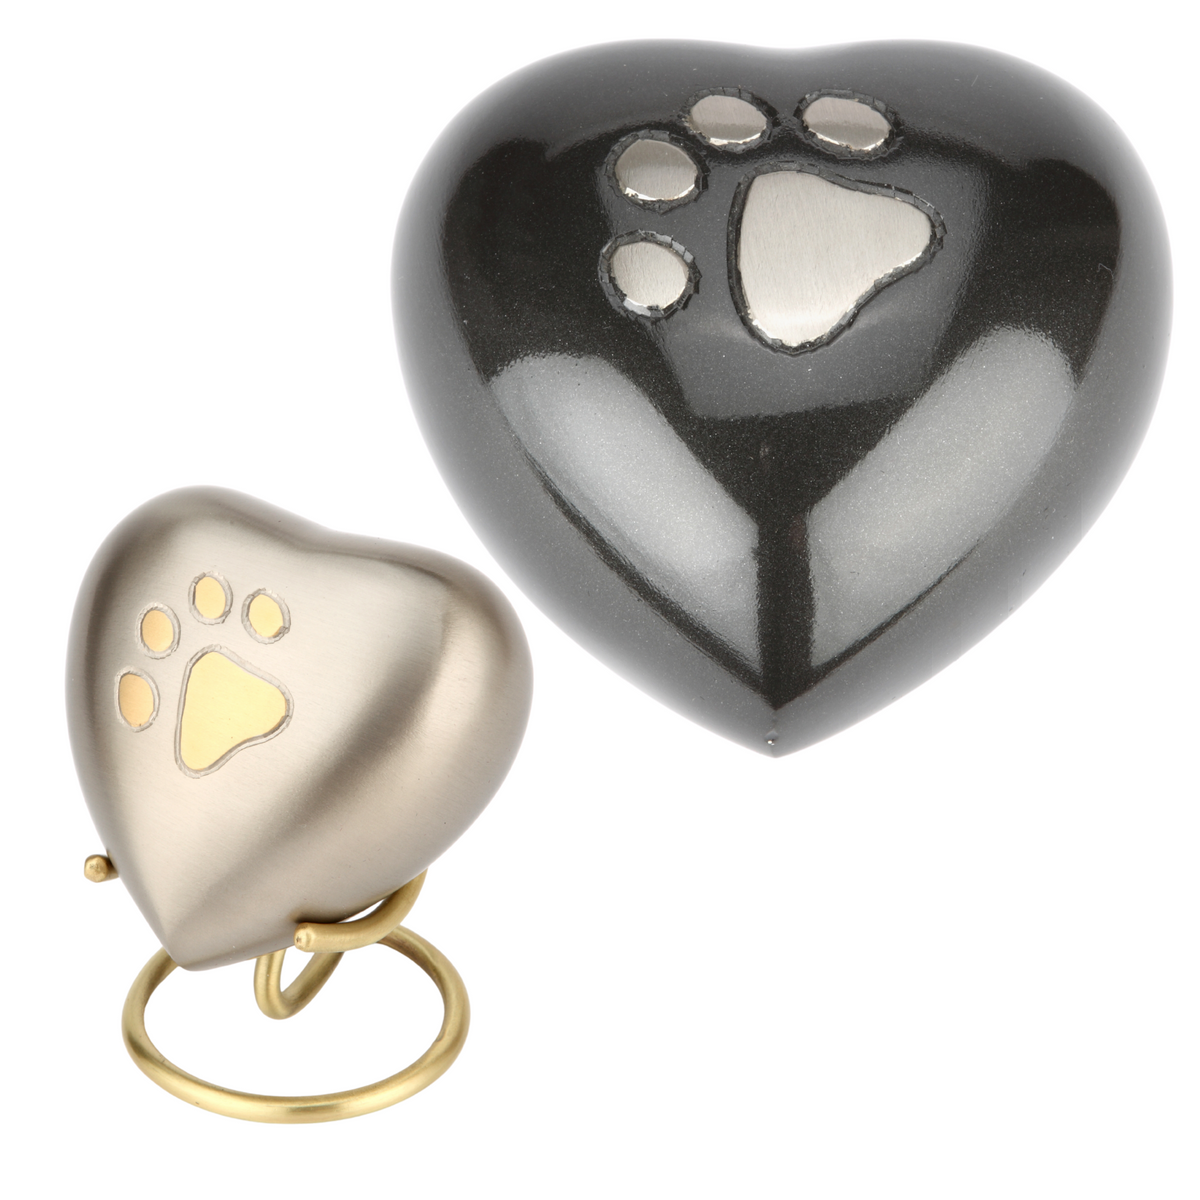 Hedon Heart Cremation Ashes Keepsake Urns - Urns UK